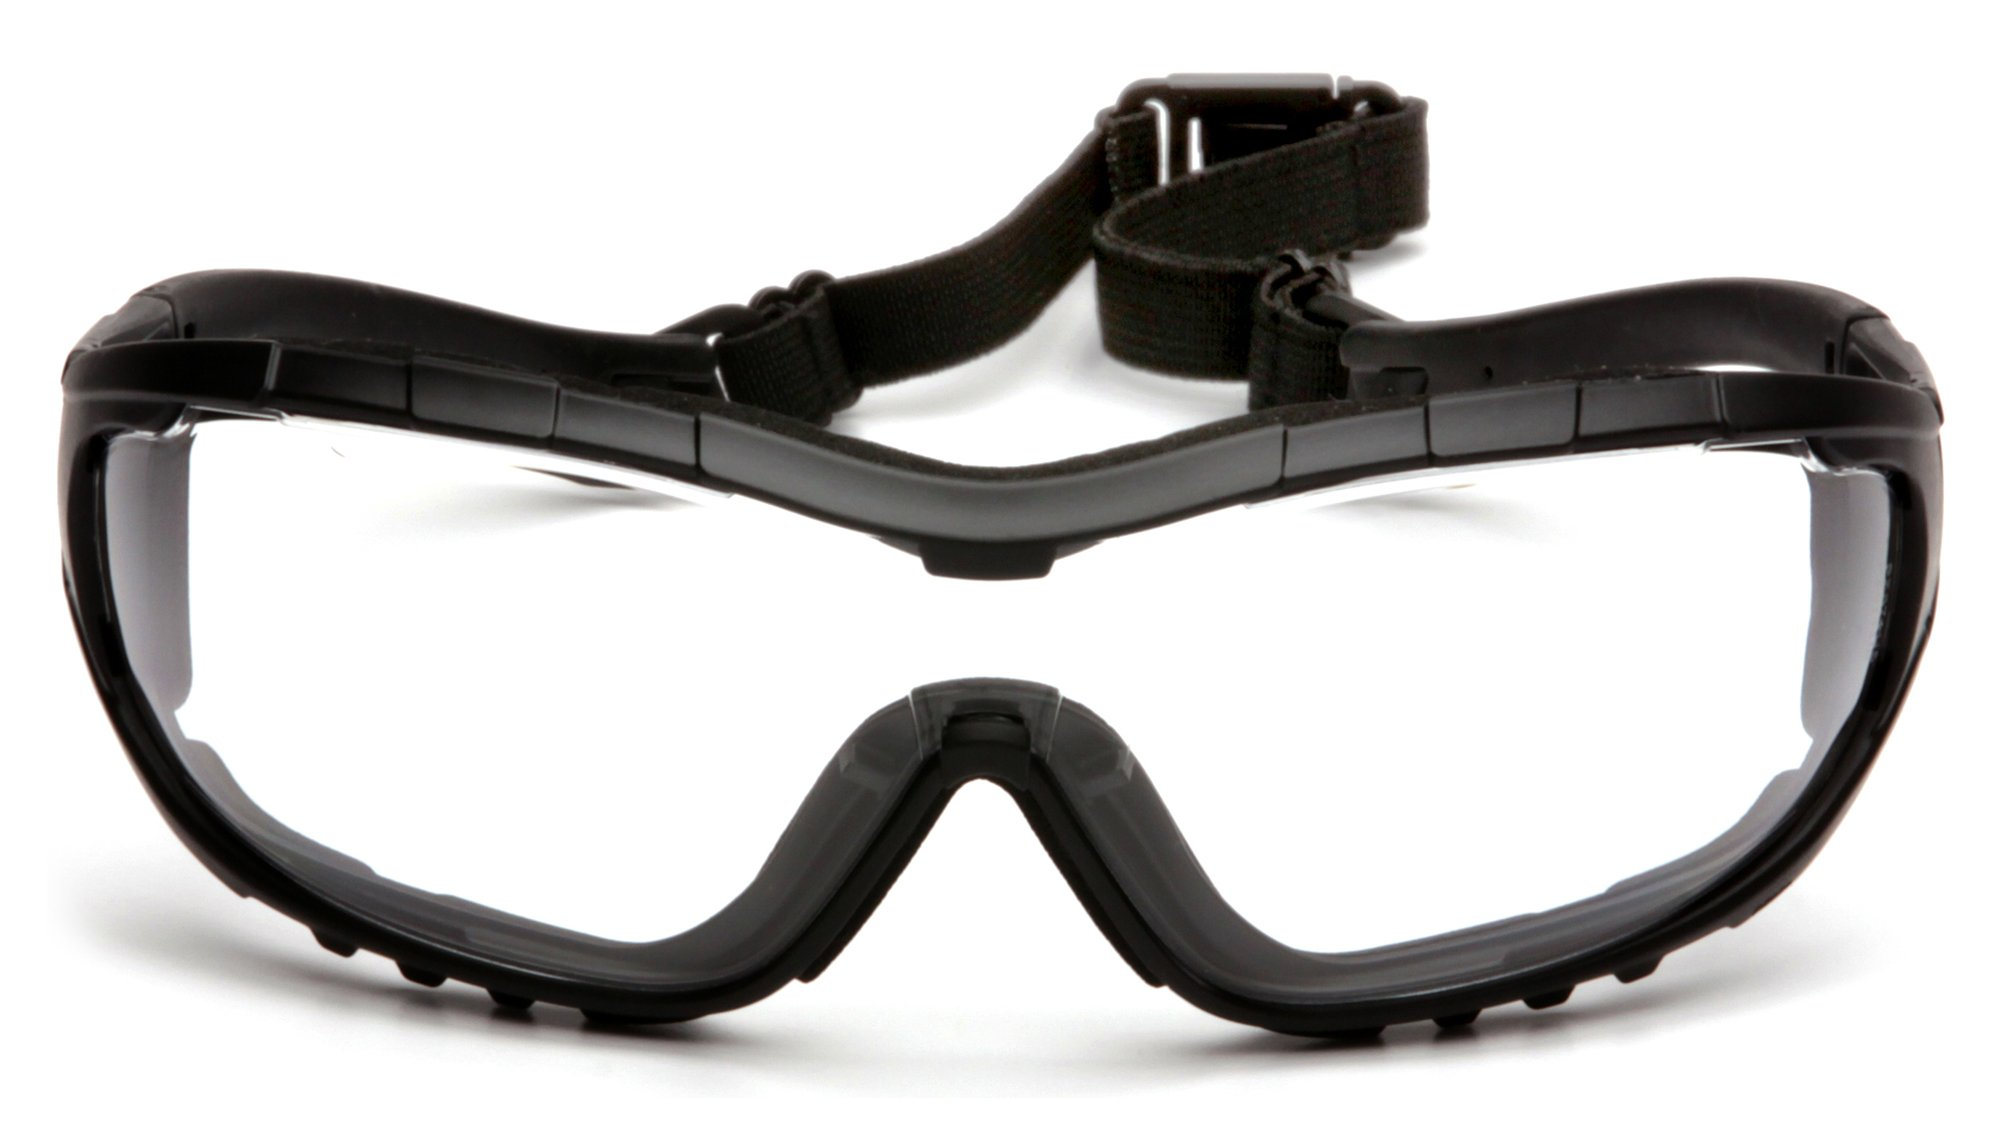 Pyramex V3G Safety Goggles, Black Strap/Temples/Clear H2X Ultra Lens by Pyramex Safety (Image #2)